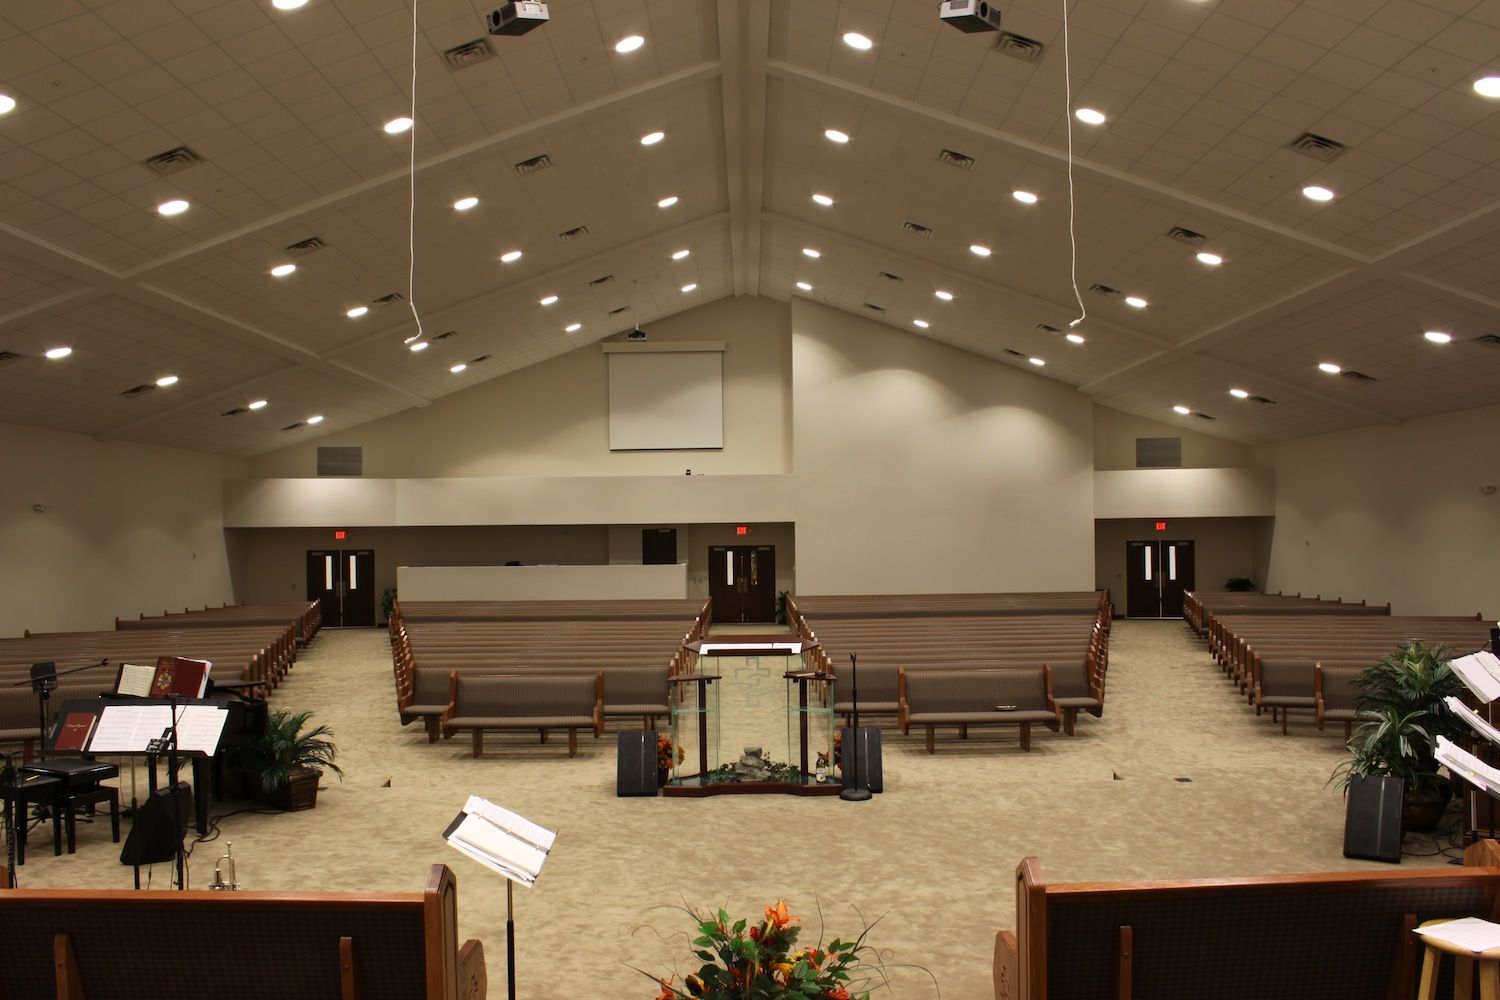 Church Sanctuary Design Living Water Church Of God Kannapolis Nc Sanctuary Design Ideas